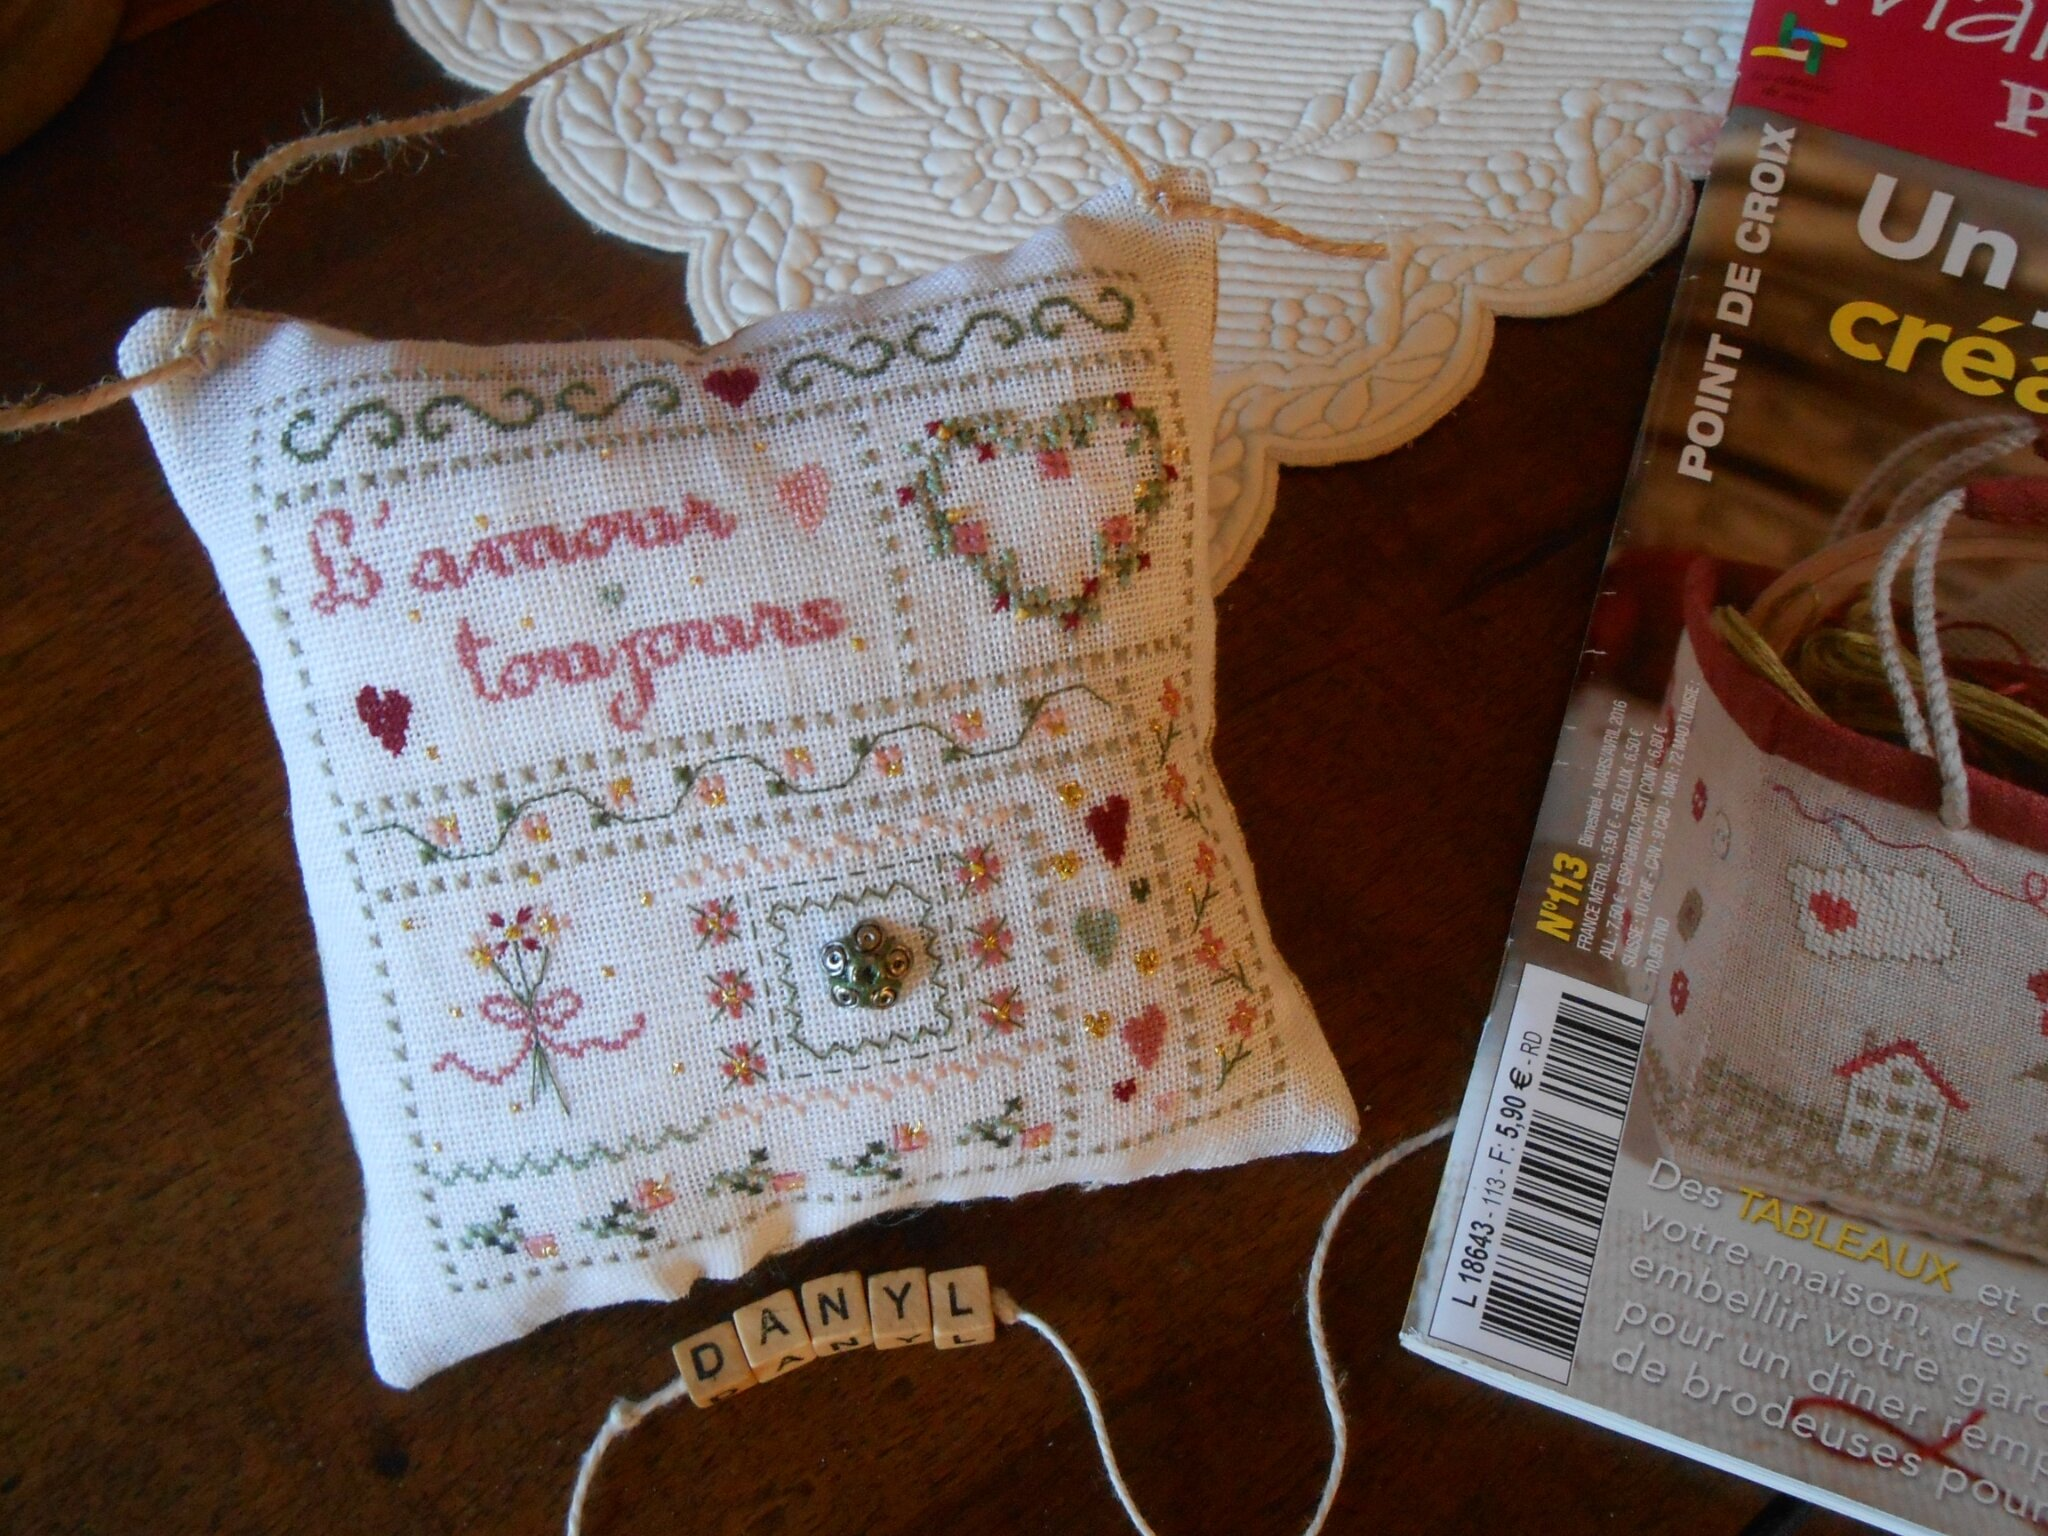 coussin l'amour toujours 2